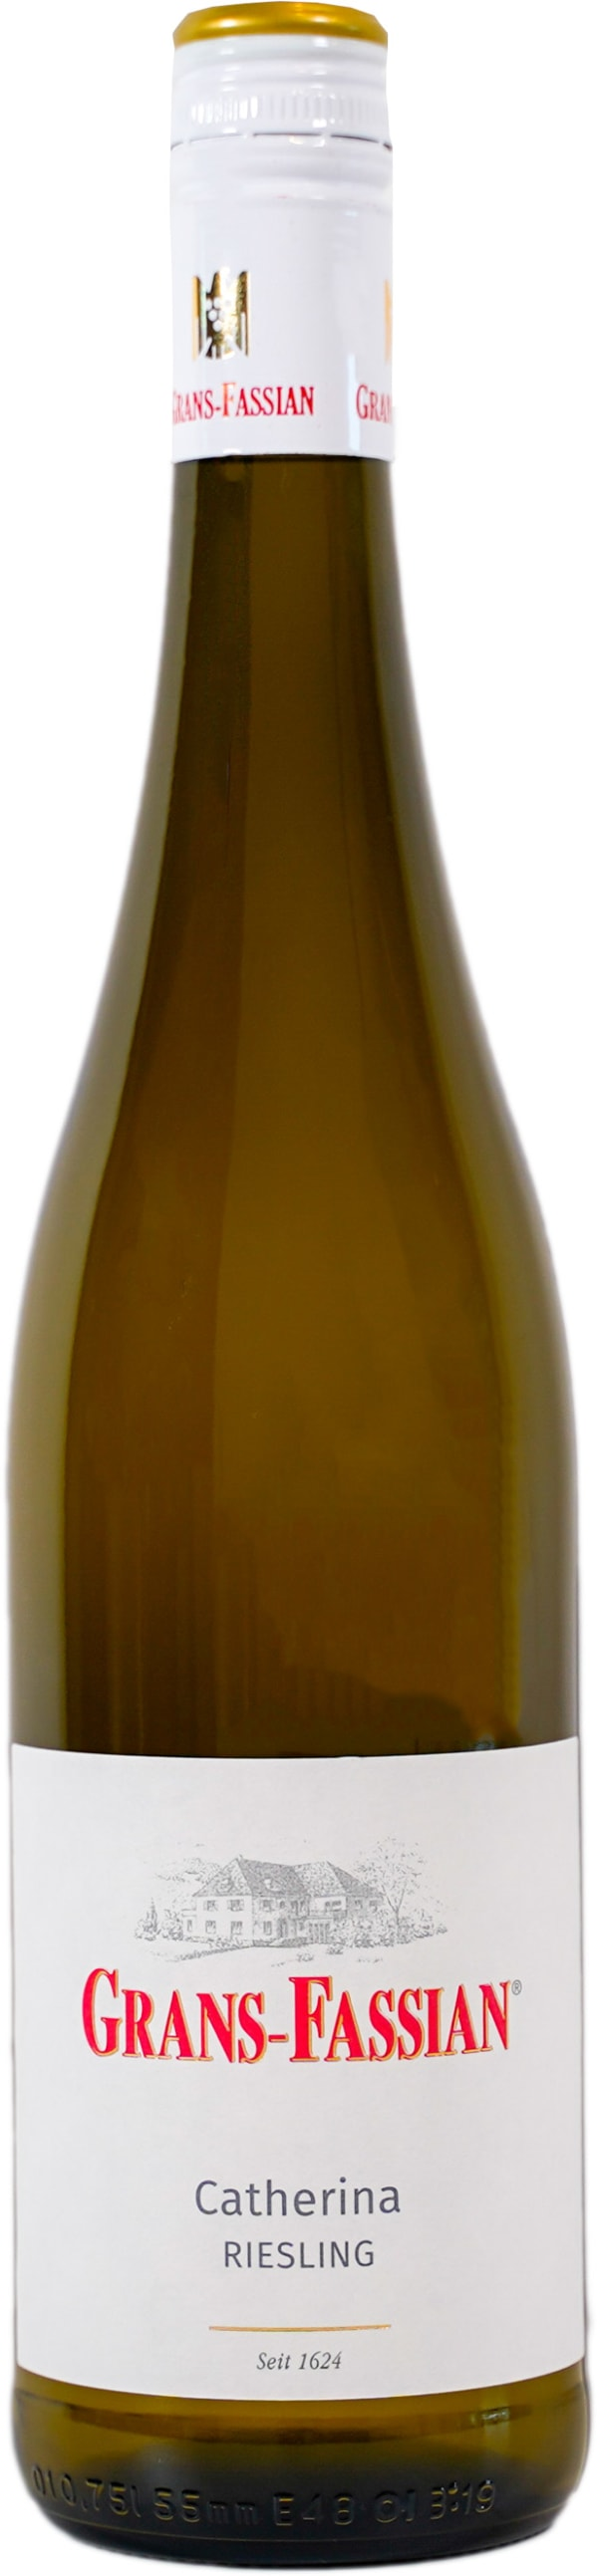 Grans-Fassian Catherina Riesling 2018